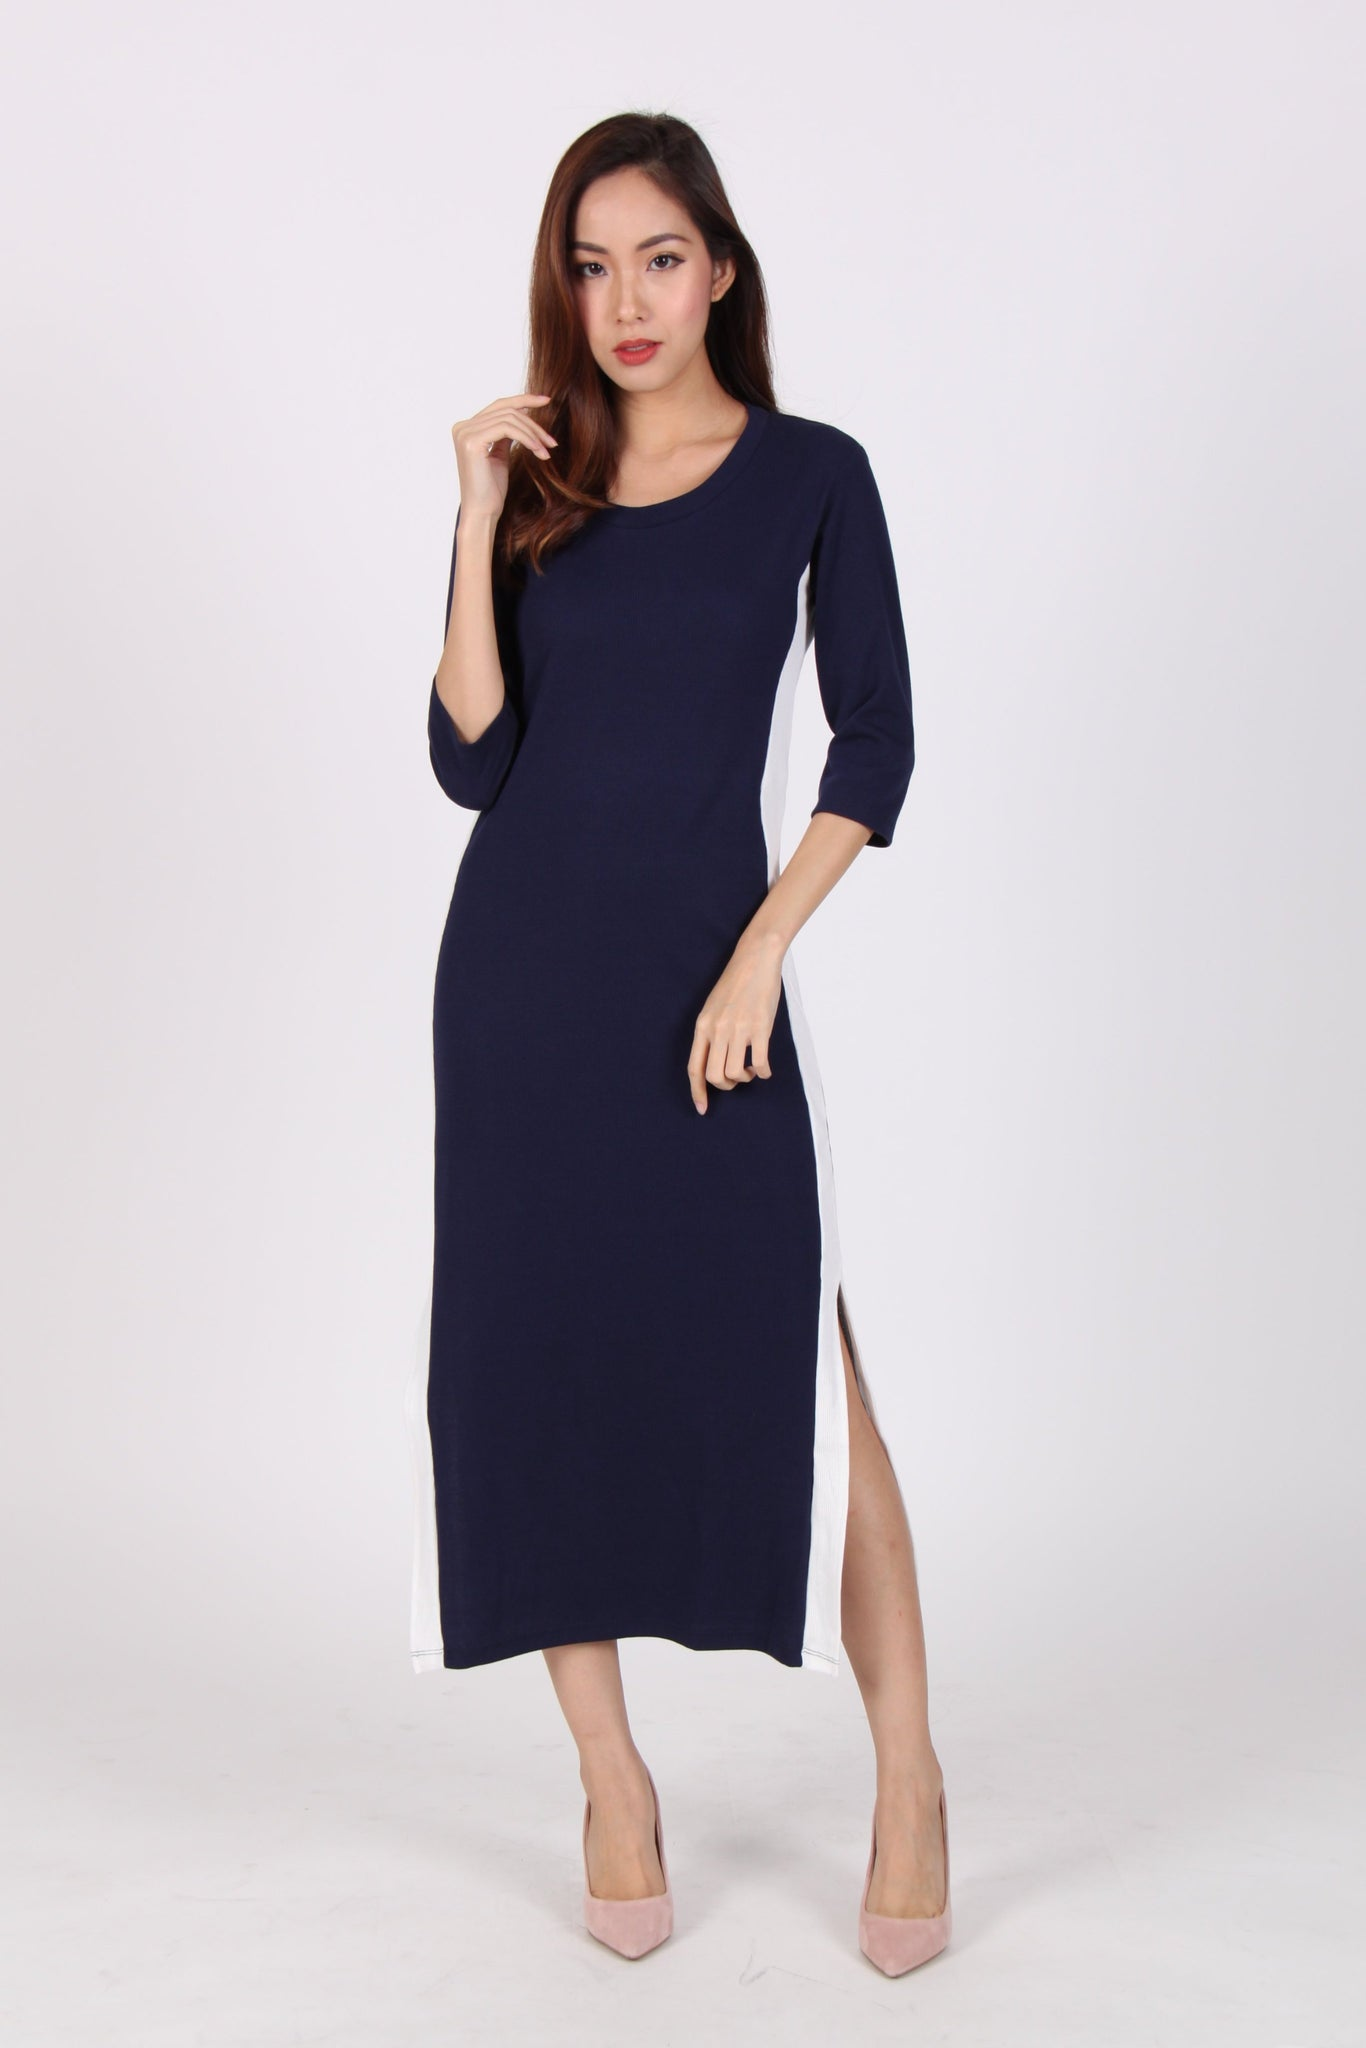 Contrast Quarter Sleeve Side Slit Midi Dress in Navy Blue